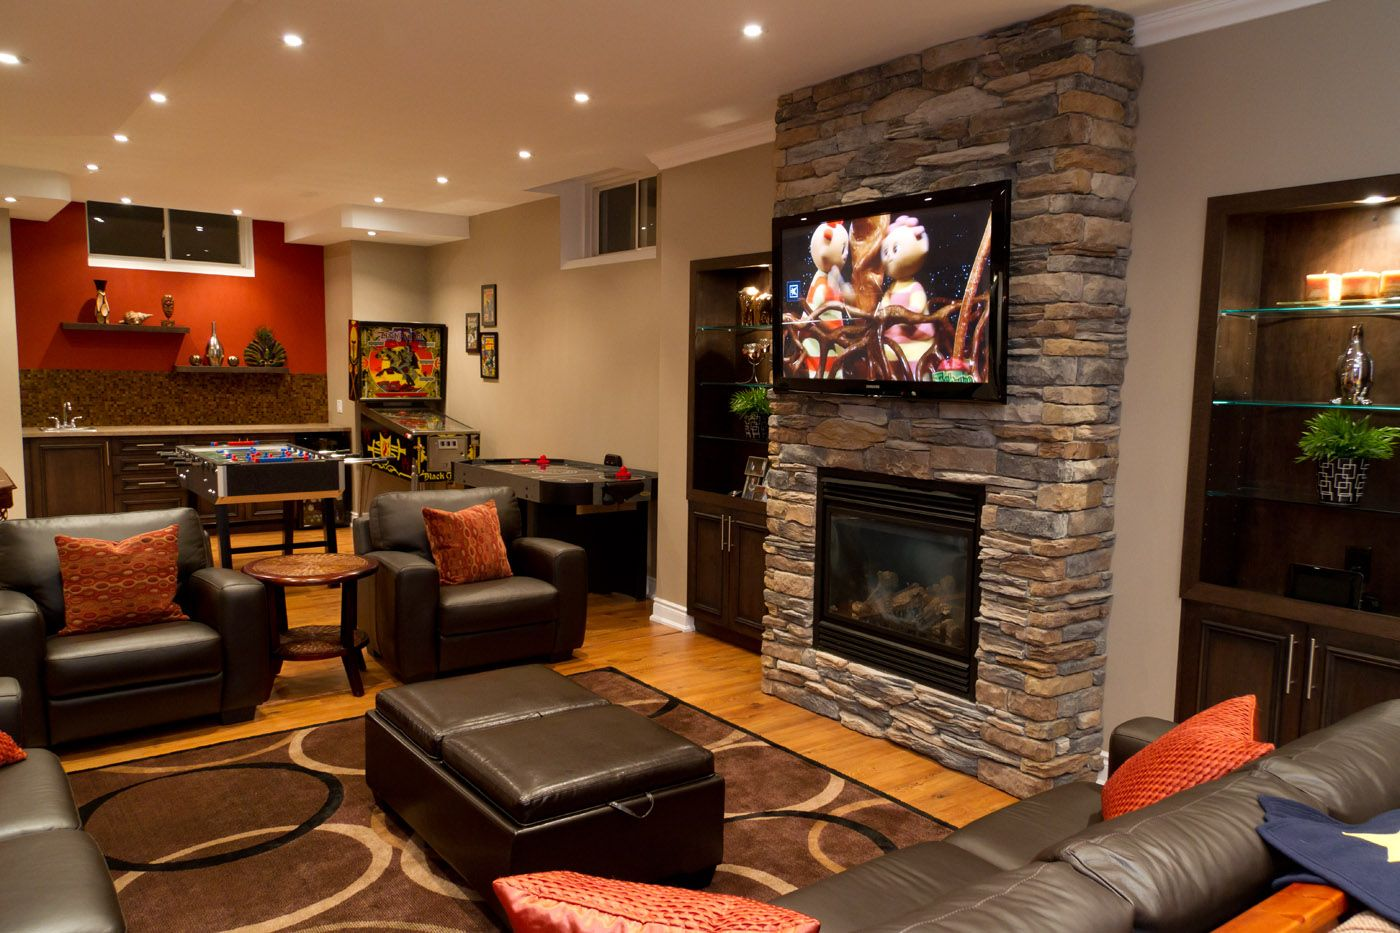 Basement Living Room Designs Gorgeous Basement Playroom Ideas  Finished Basement Basement Renovations Design Decoration